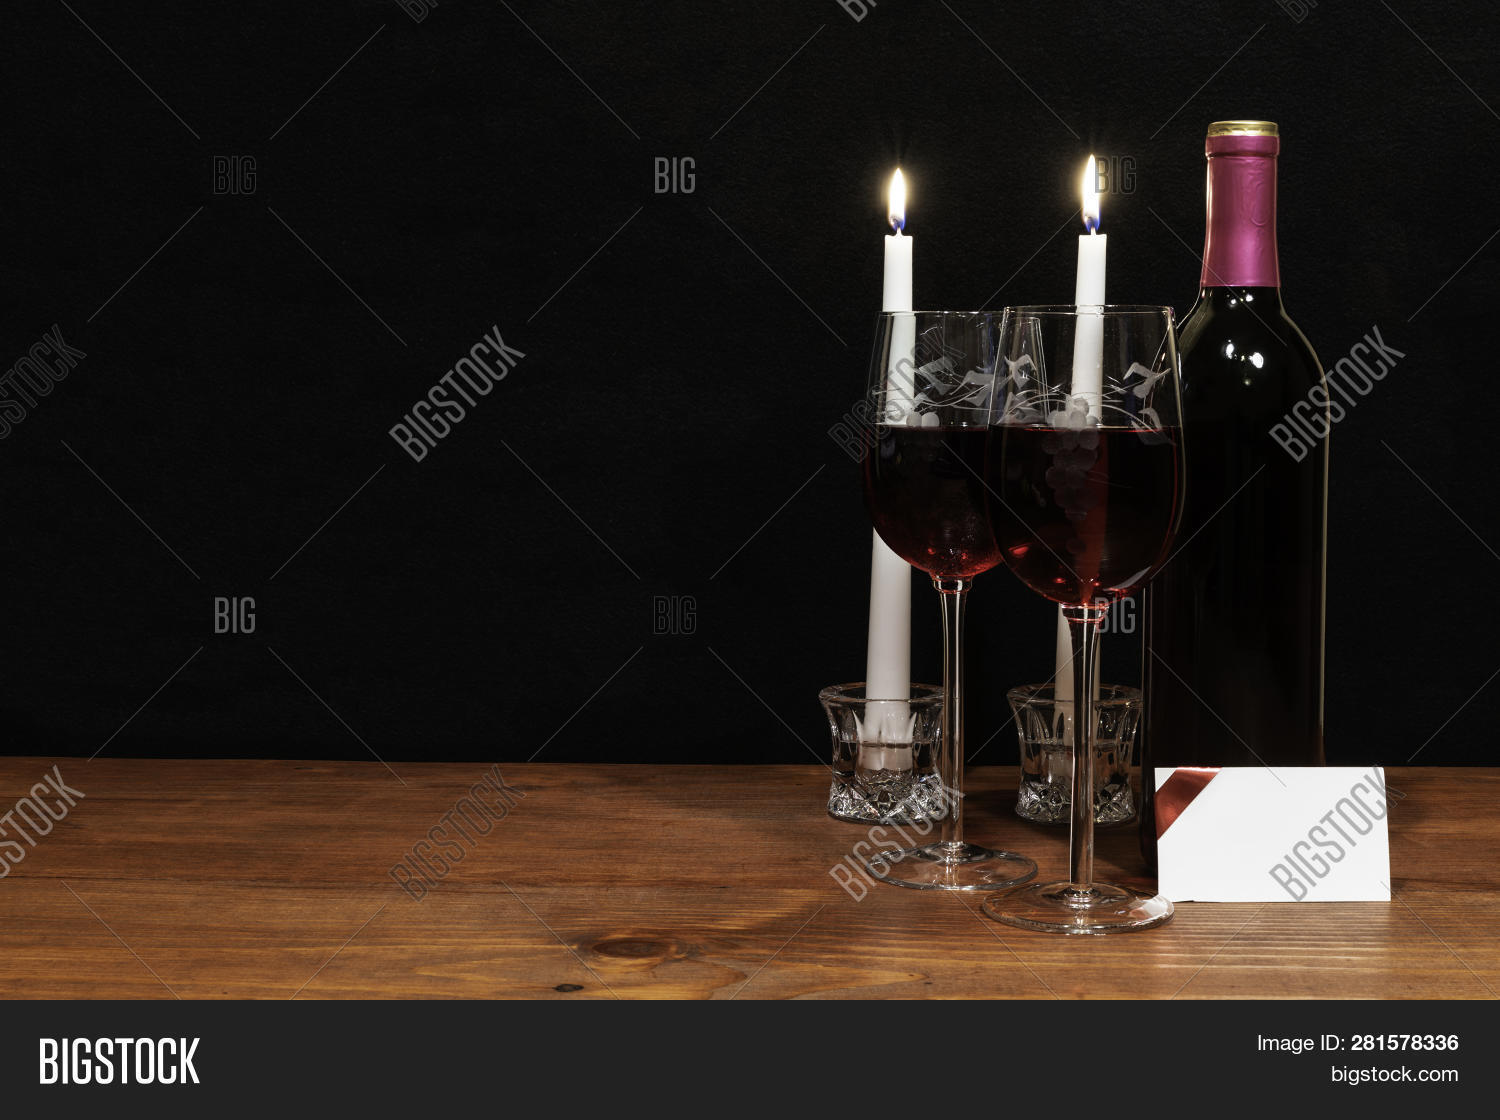 0876a7ae1828 Beautiful etched wine glasses and bottle of red wine, white candles, on  wooden table with card on dark background. Valentines, Mothers Day, Easter,  ...